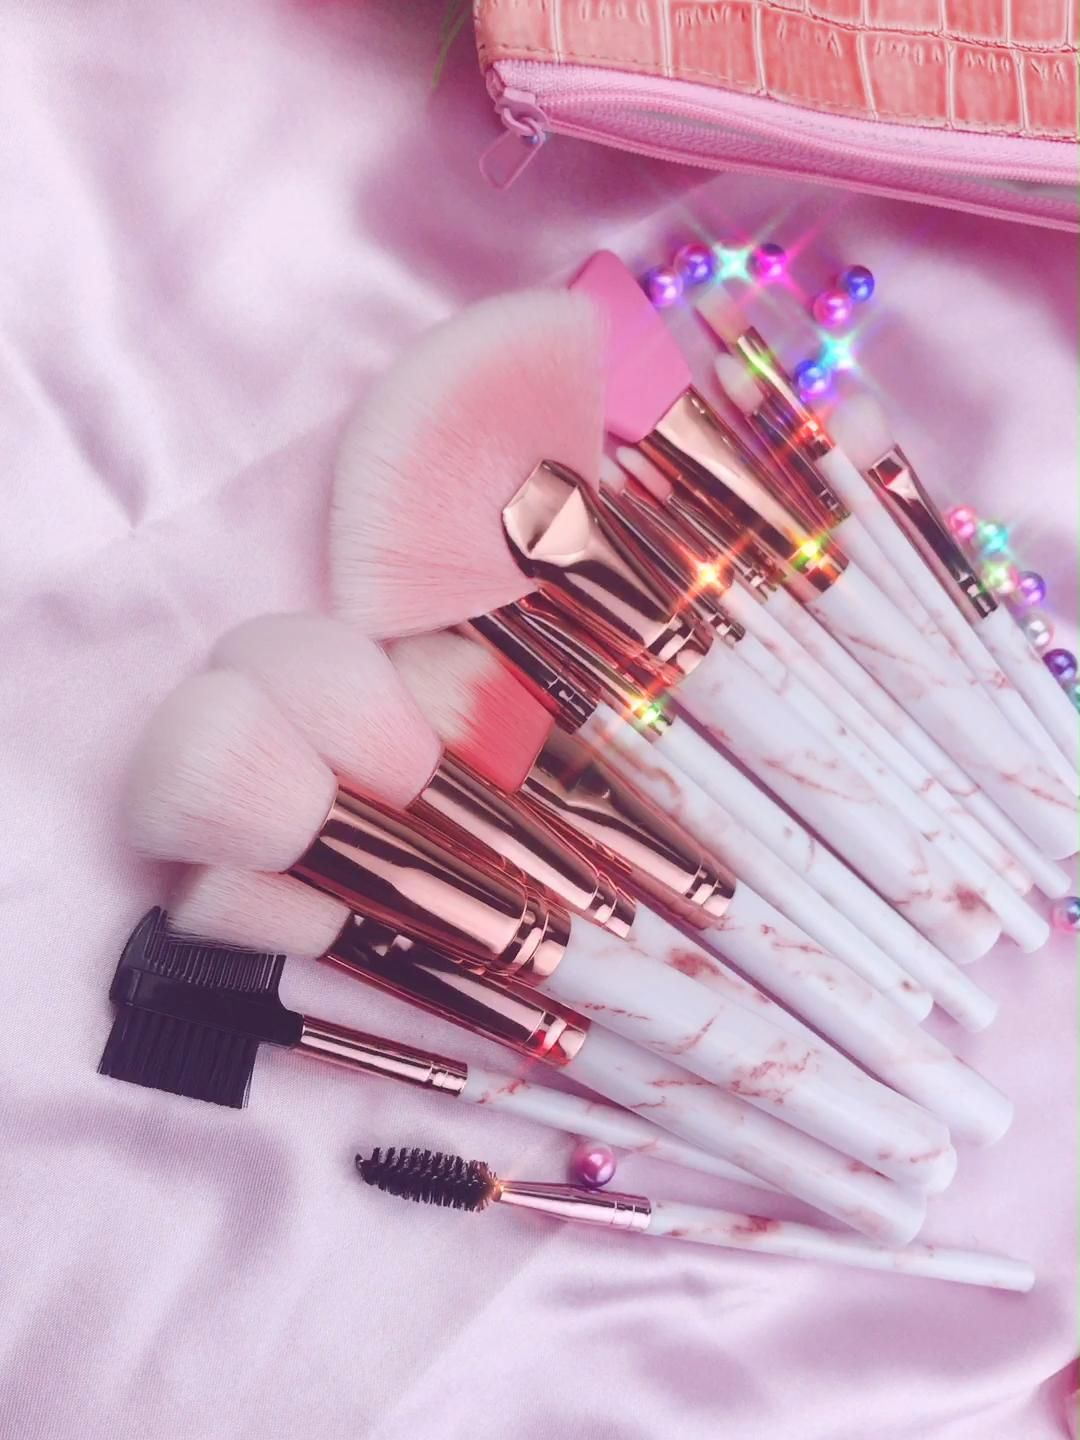 Photo of makeup brushes